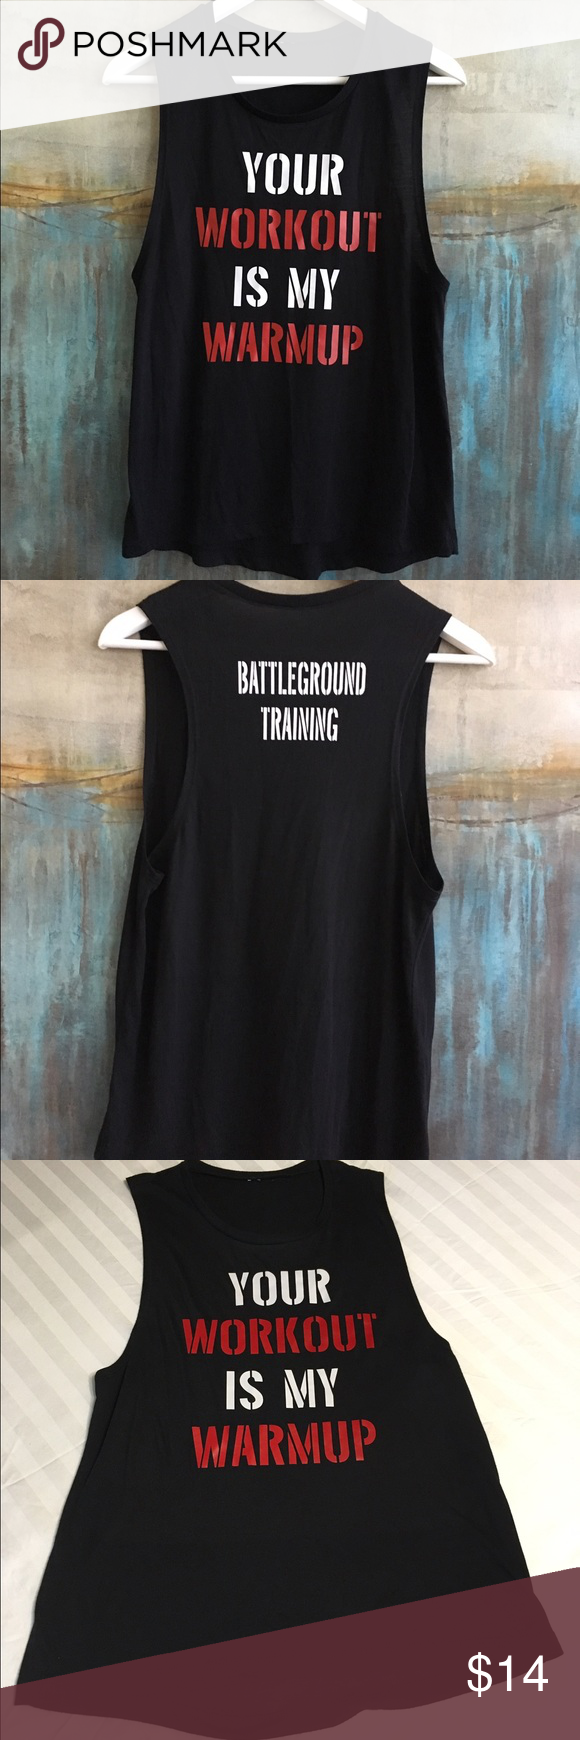 """Graphic Muscle Tee Size Small Graphic muscle tee with cut out sleeveless design and graphic on chest """"Your workout is my warm up"""" Size Small Color Black. Material 60/40 Cotton/Poly. Measurements: shoulders: 12, pits: 16, top to bottom: 25 Tops Muscle Tees"""